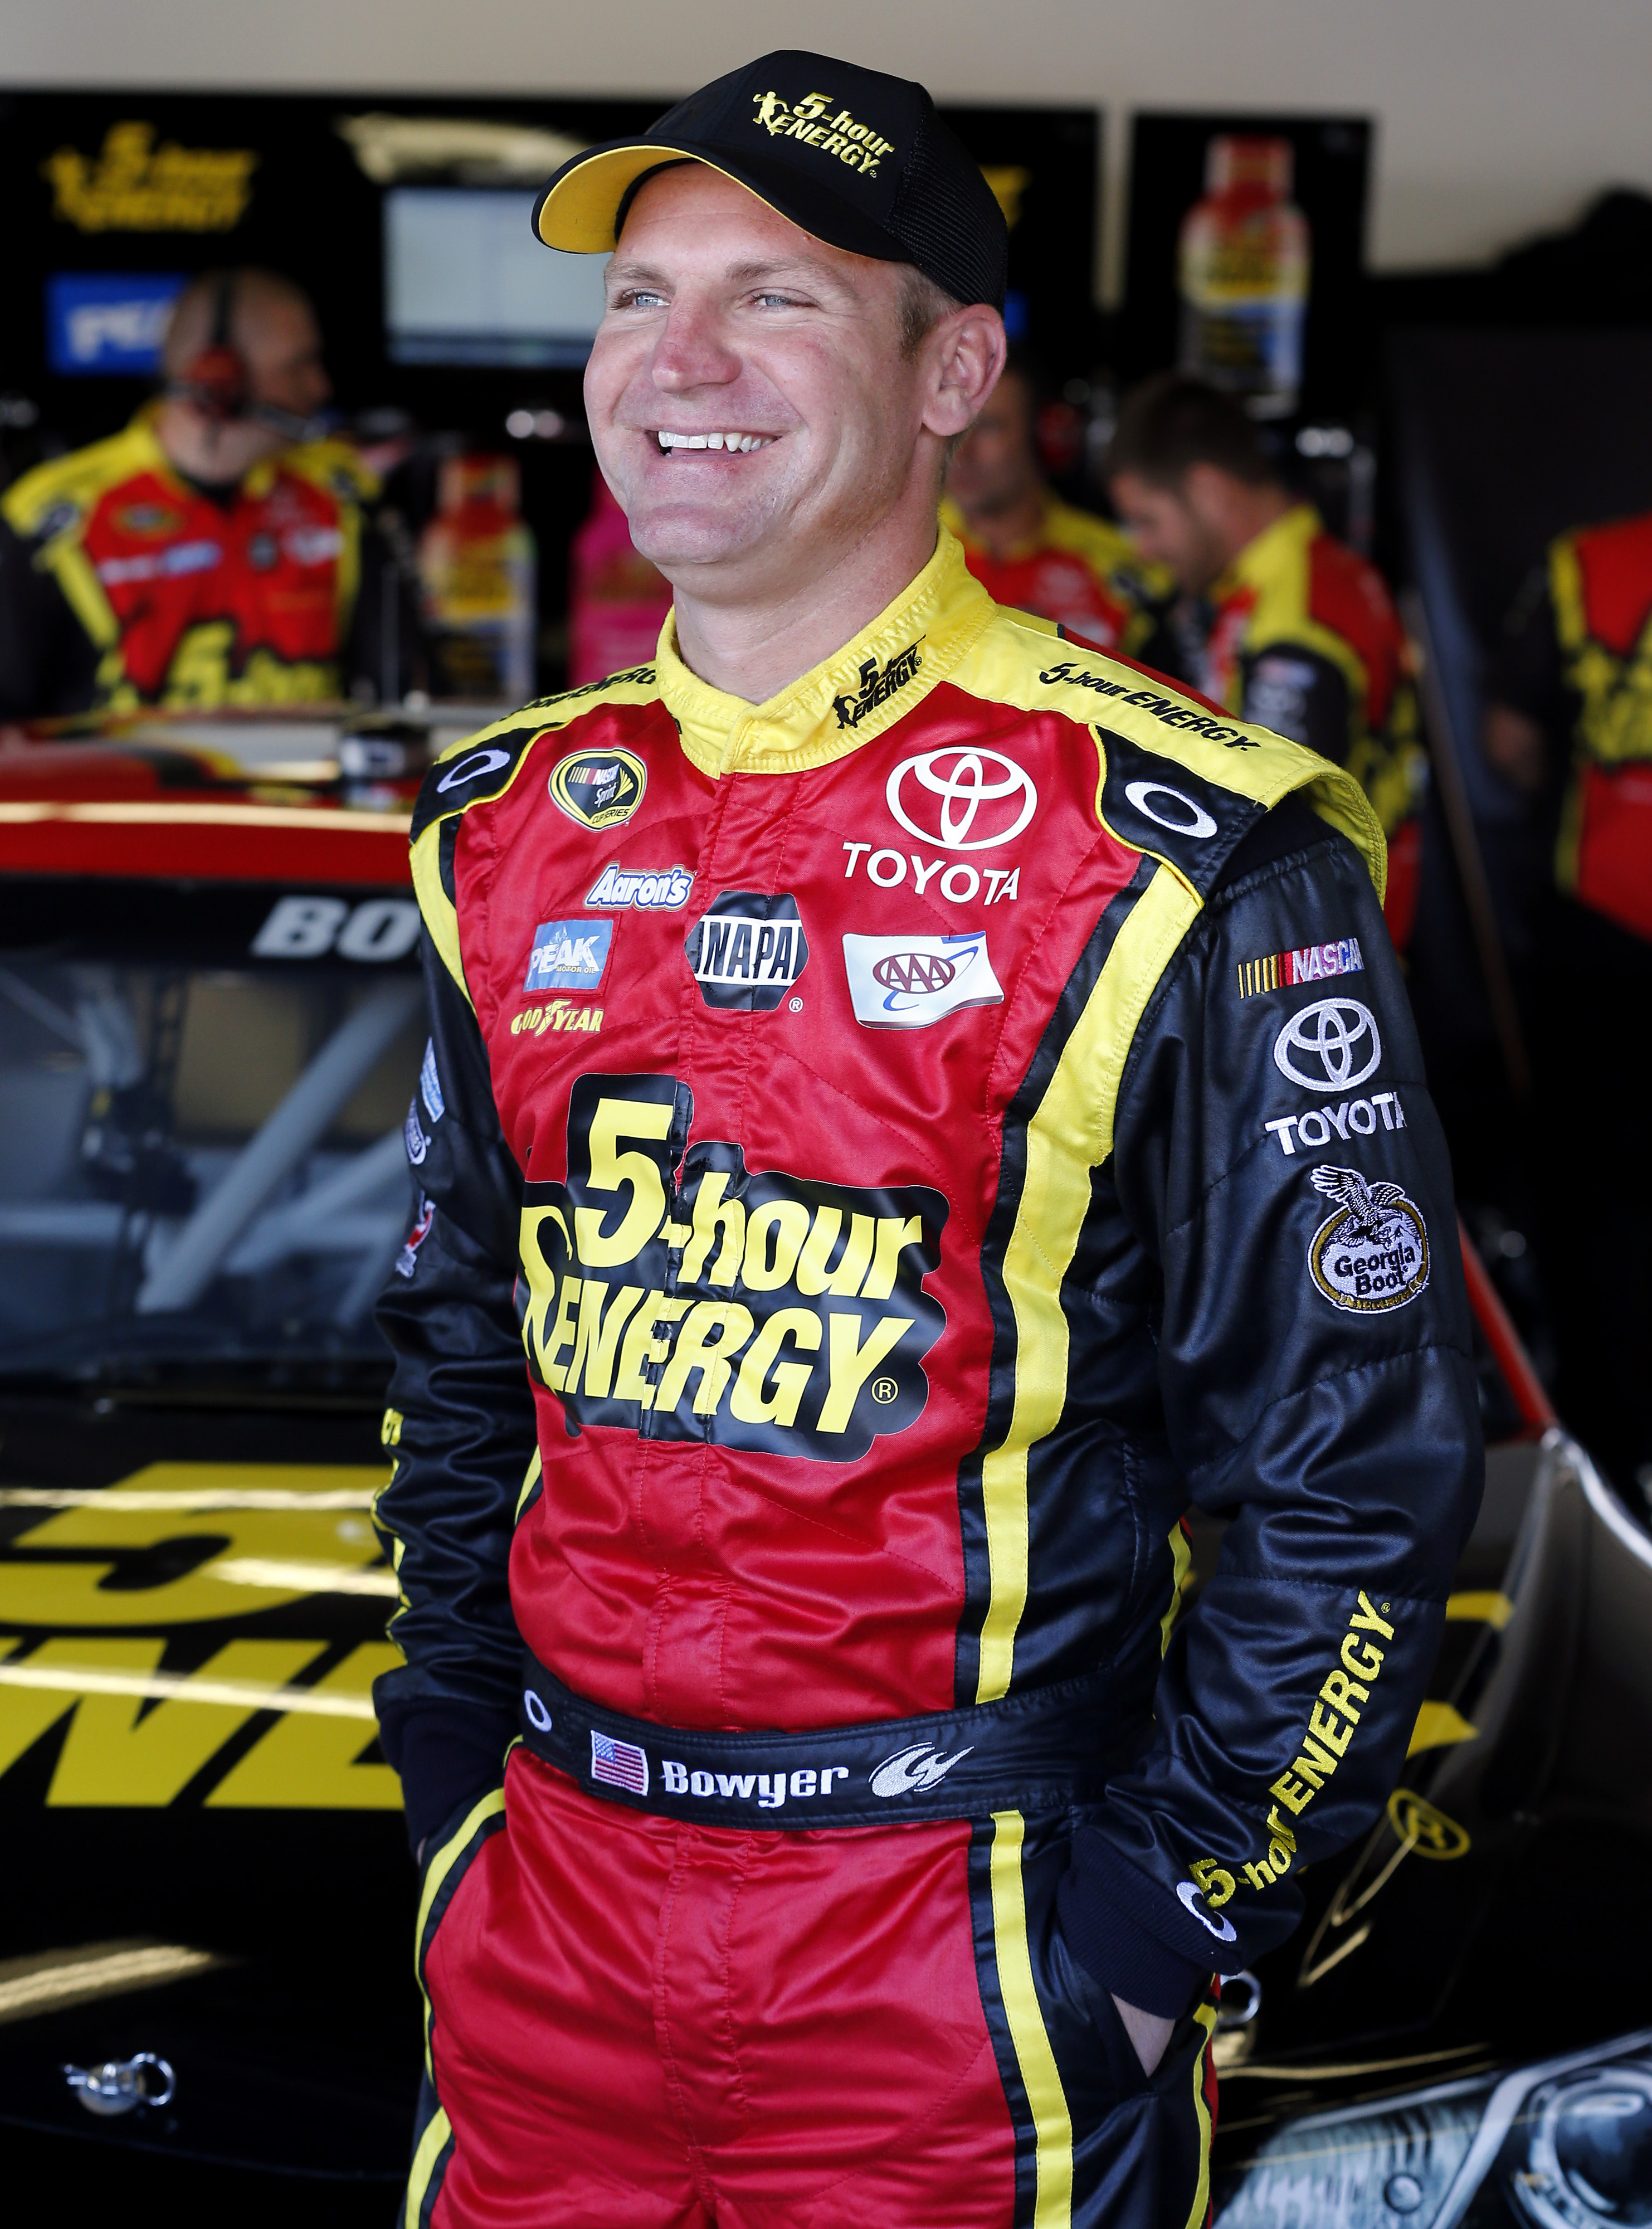 NASCAR should have come down harder on Michael Waltrip Racing